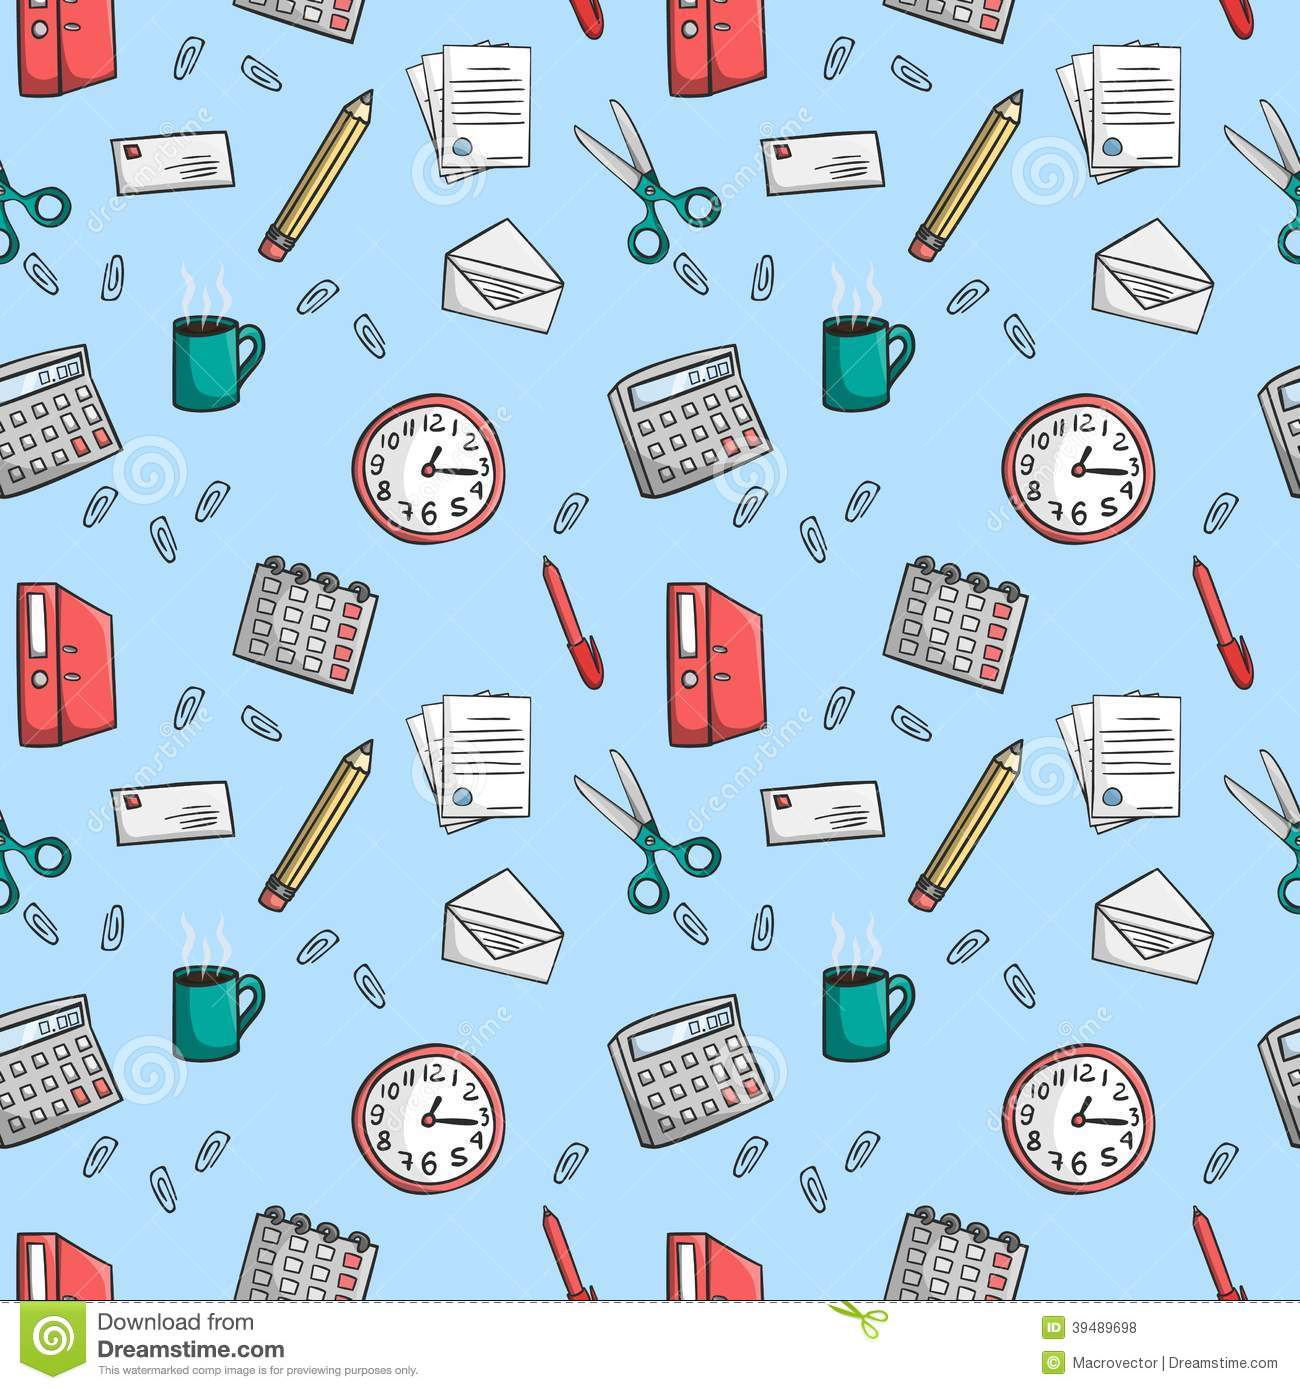 Stress Girl Wallpaper Seamless Office Stationery Pattern Background Stock Vector